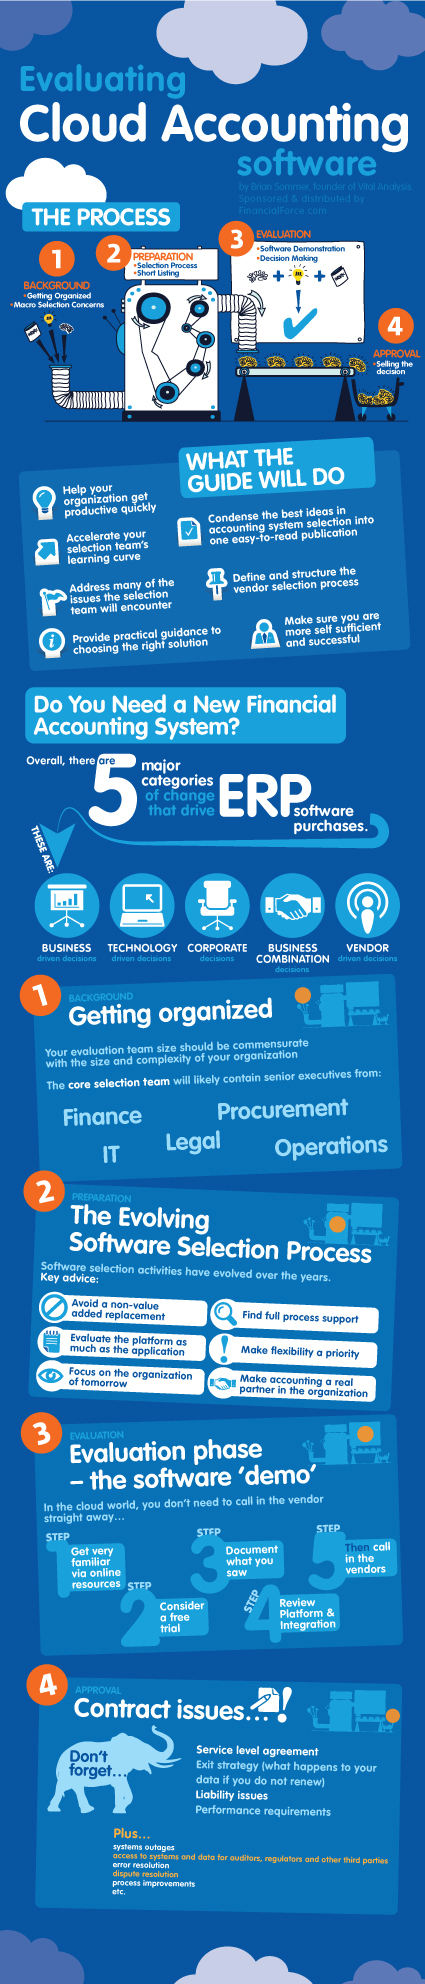 INFOGRAPHIC: Assessing Cloud Accounting Applications | Cloud Central | Scoop.it